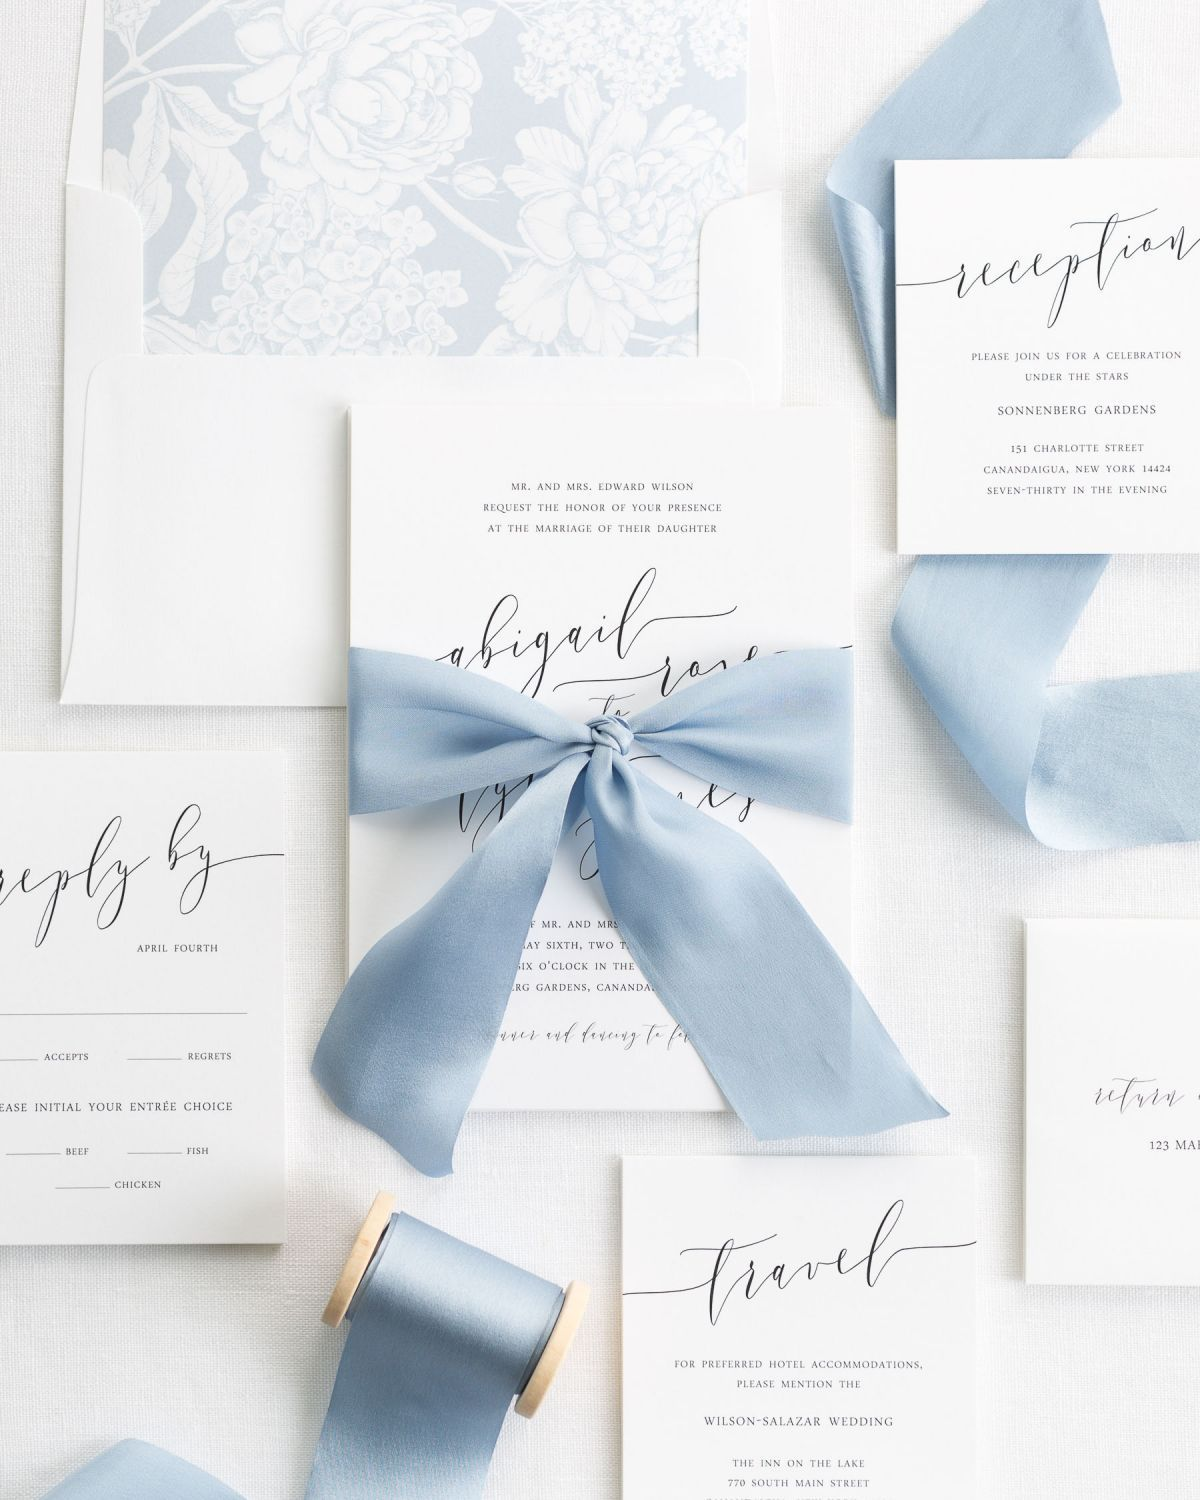 Elegante Bluse Hochzeit Romantic Calligraphy Ribbon Wedding Invitations Wedding